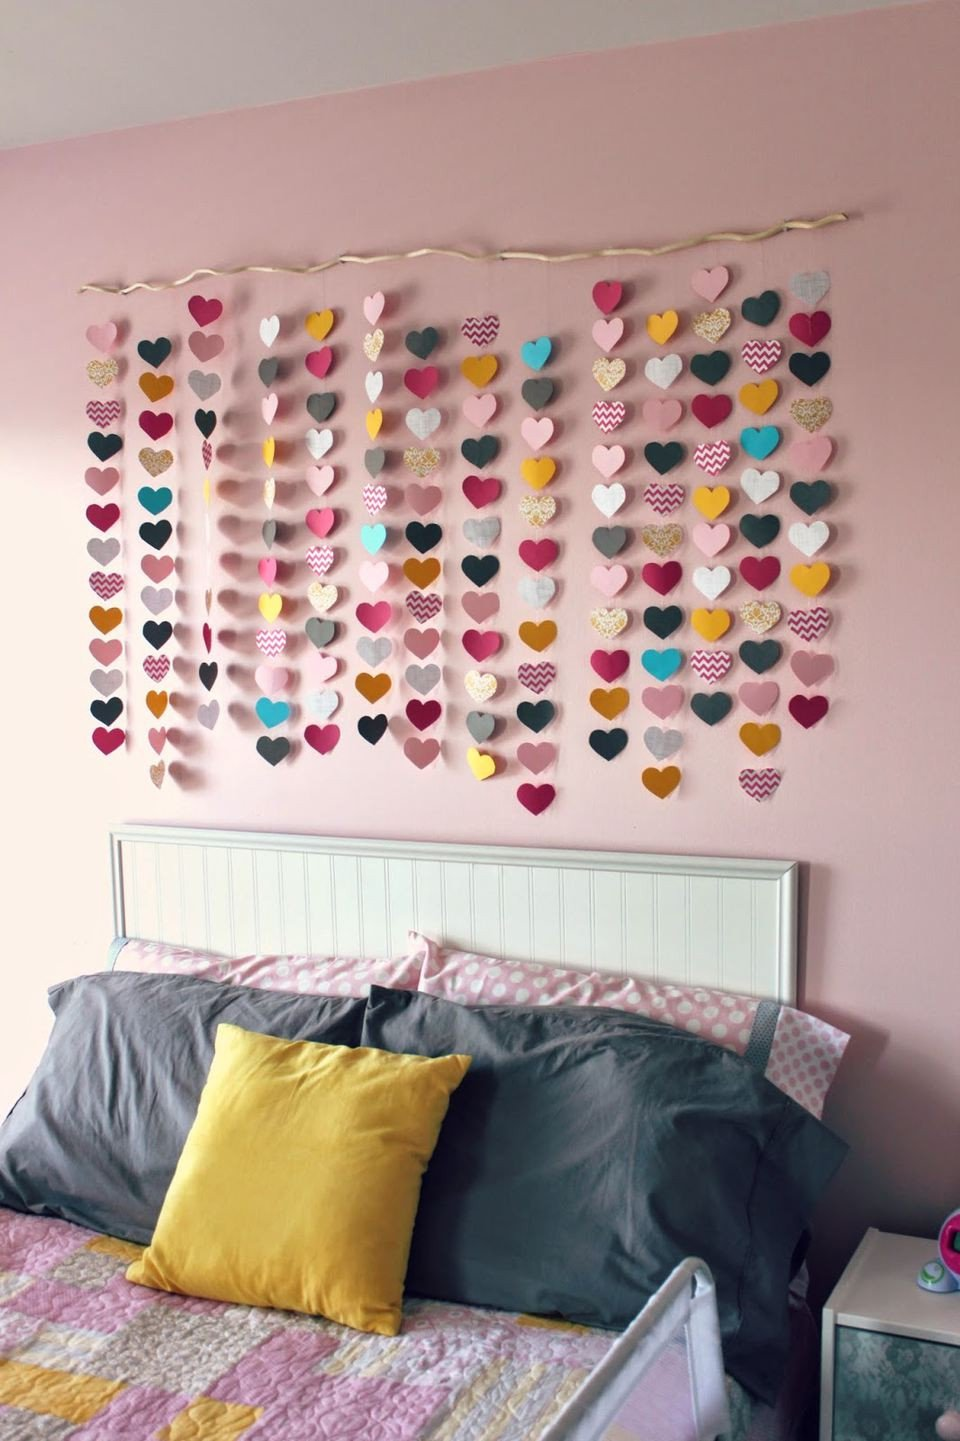 Wall Decoration for Girls Bedroom Luxury 24 Wall Decor Ideas for Girls Rooms